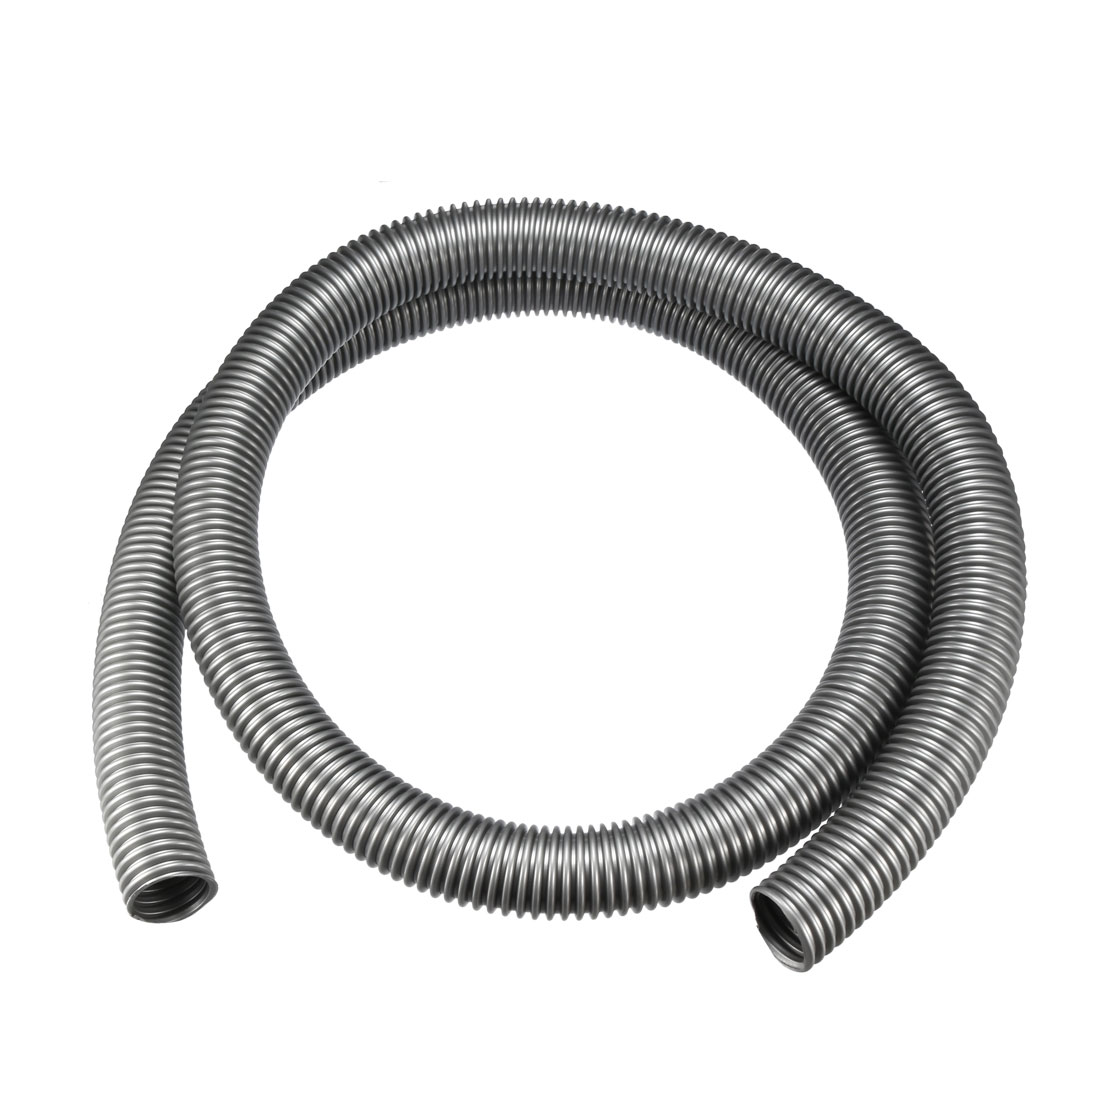 40mm 2M EVA Flexible Tube Central Vacuum Cleaner Hose Accessory Extension Gray